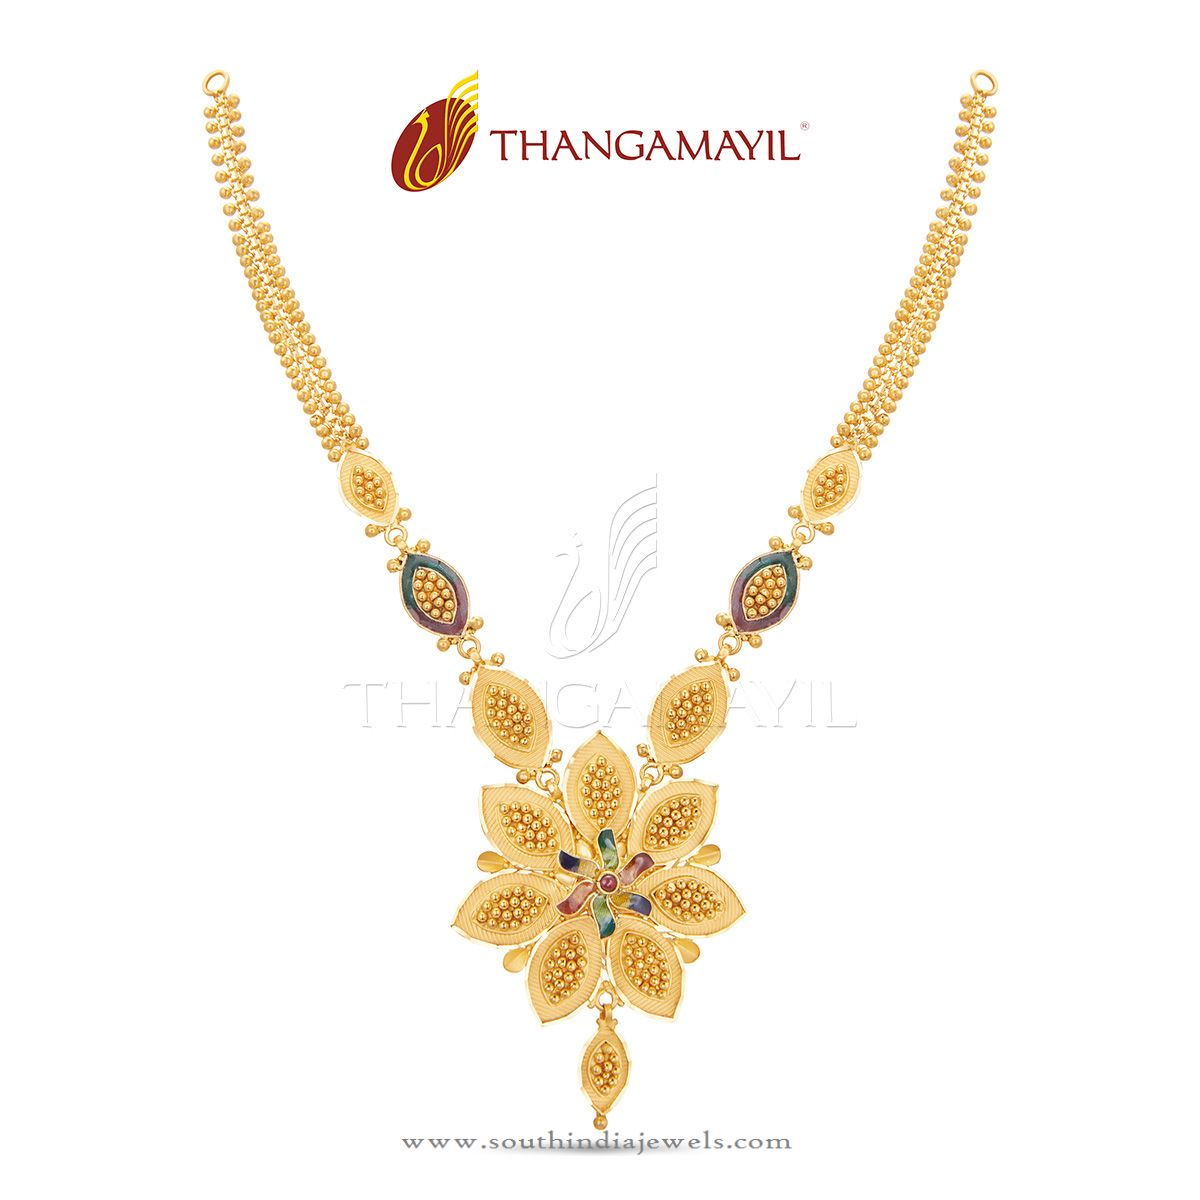 Low Weight Gold Jewellery Necklace ~ South India Jewels